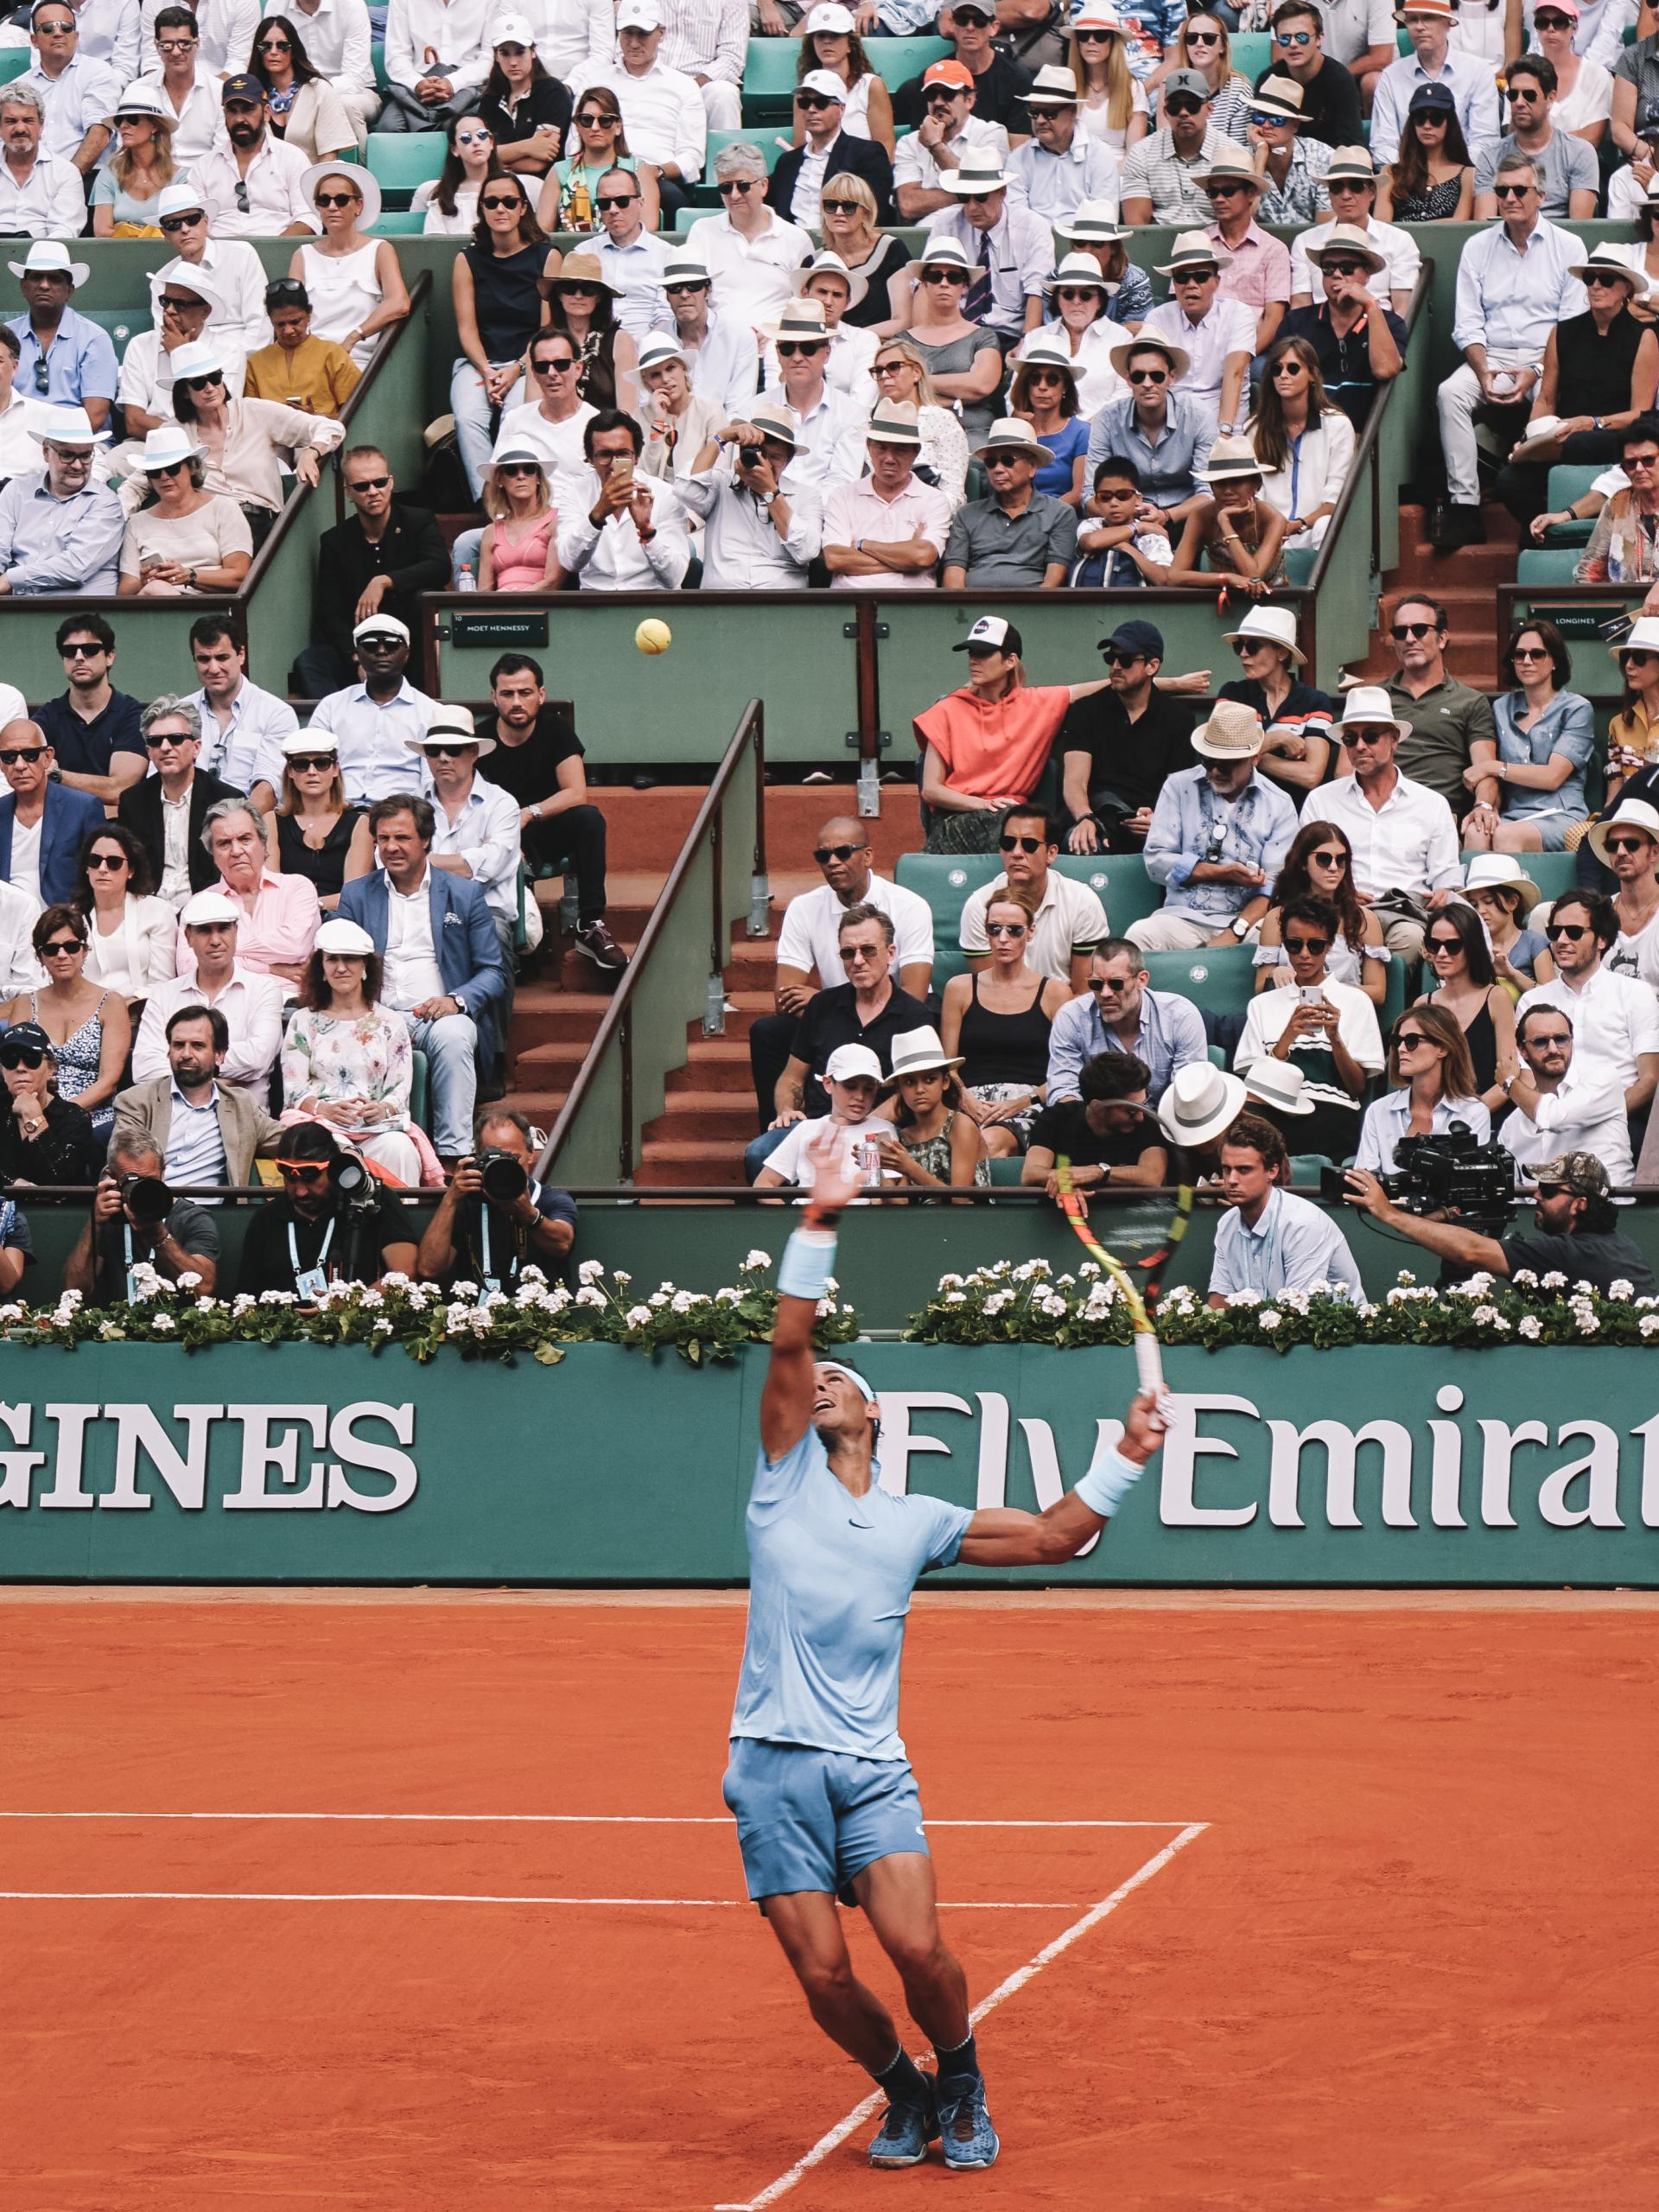 Nadal serves the ball during the french open 2018